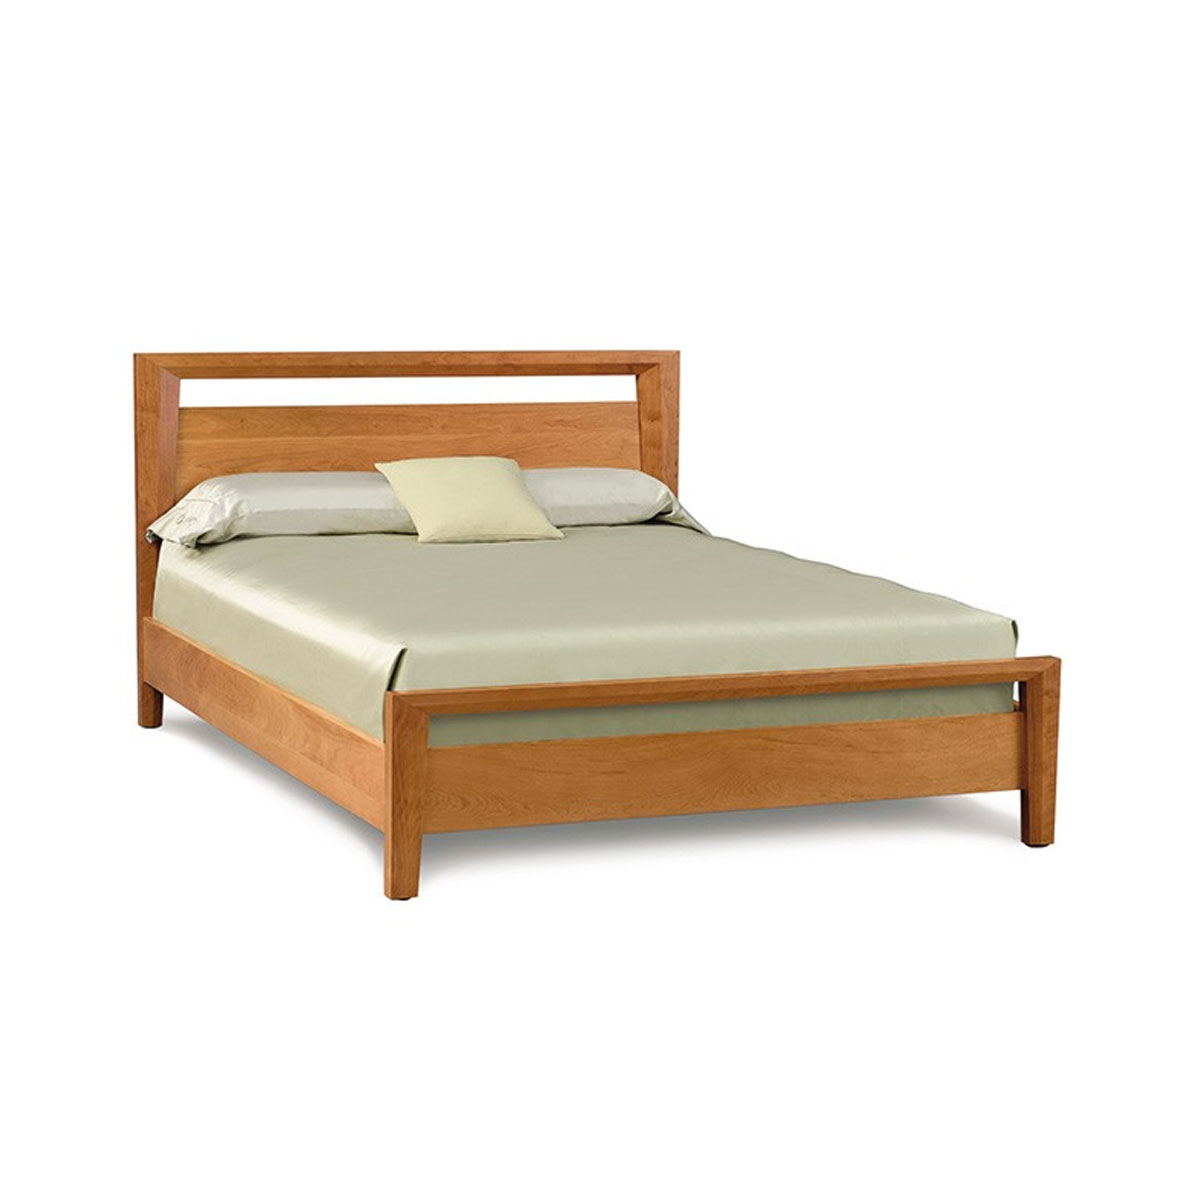 Copeland Mansfield Bed in Cherry